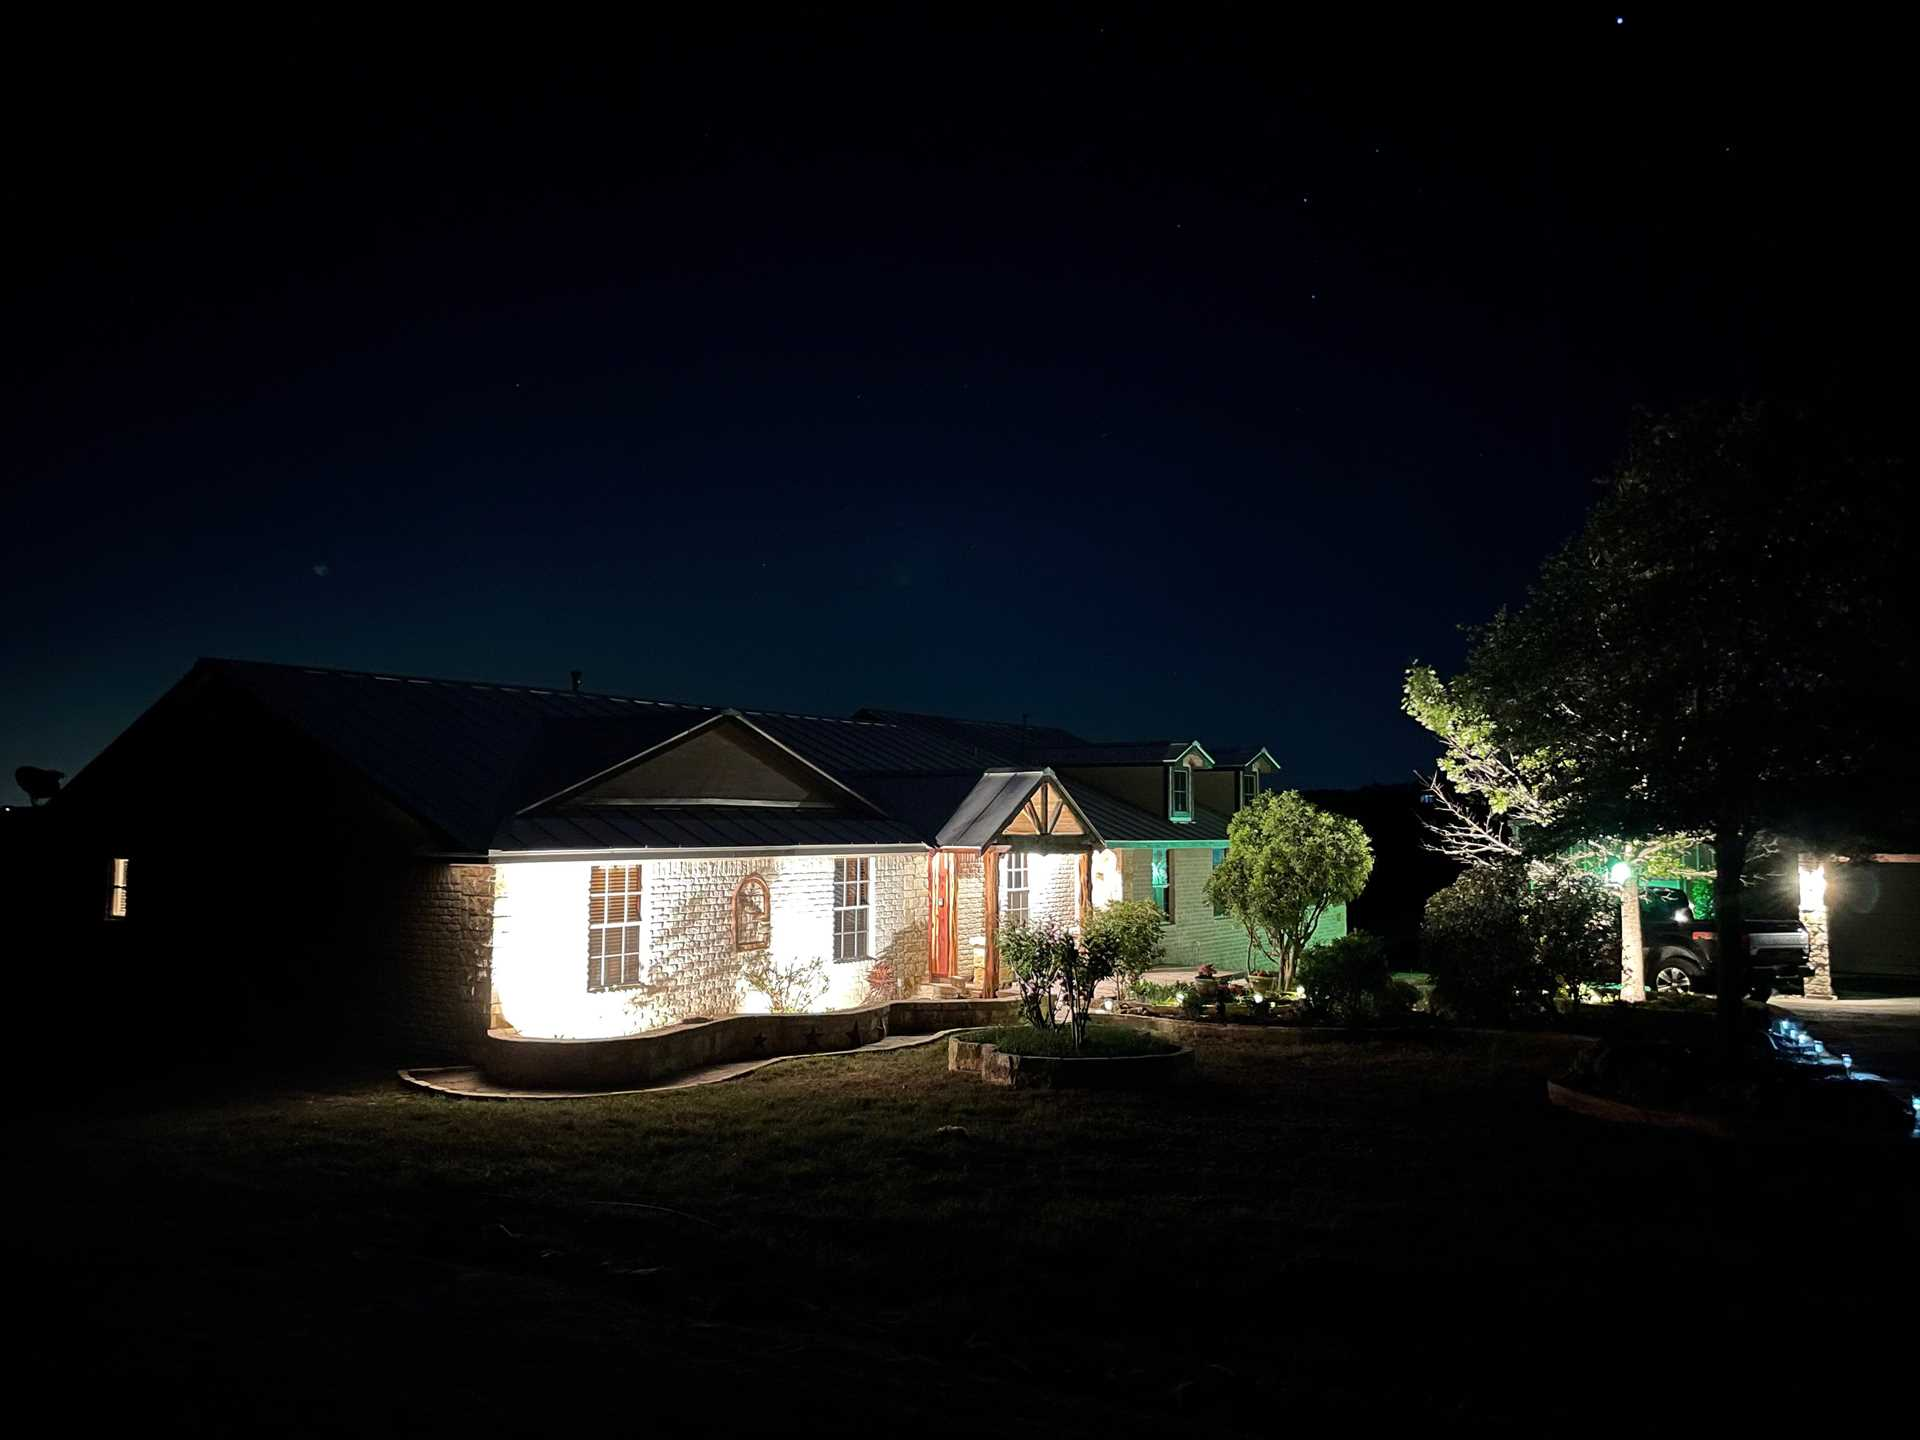 The outdoor lighting is beautiful at night! Or, if you prefer, switch it off and take in the star-filled Texas skies.